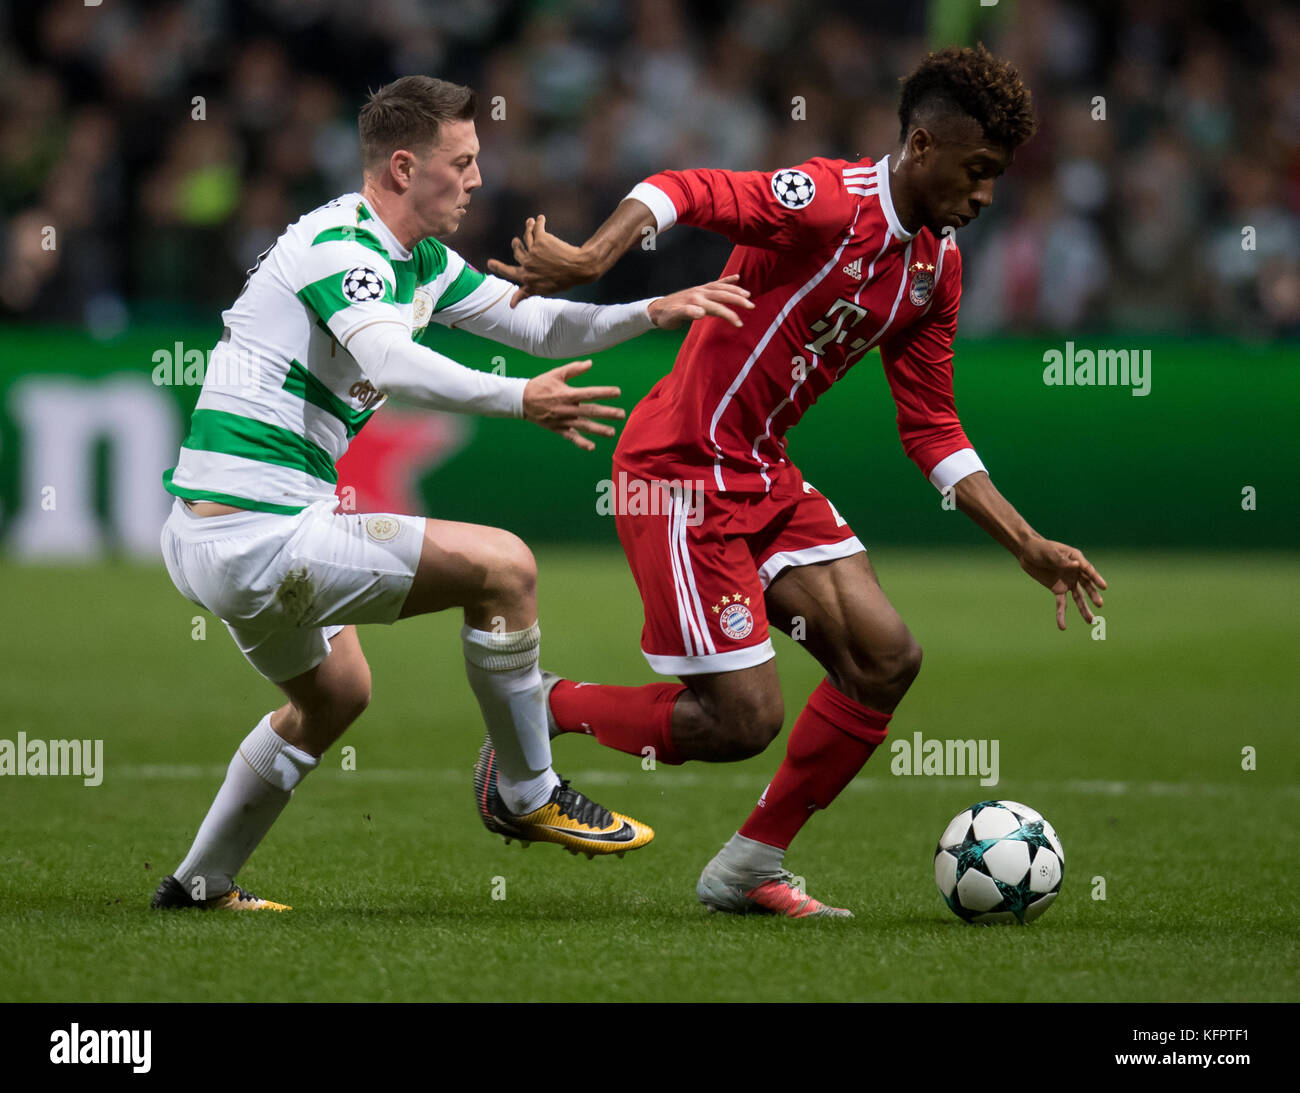 Glasgow, UK. 31st Oct, 2017. Kingsley Coman (r) of Bayern and Callum McGregor of Celtic vie for the ball during - Stock Image